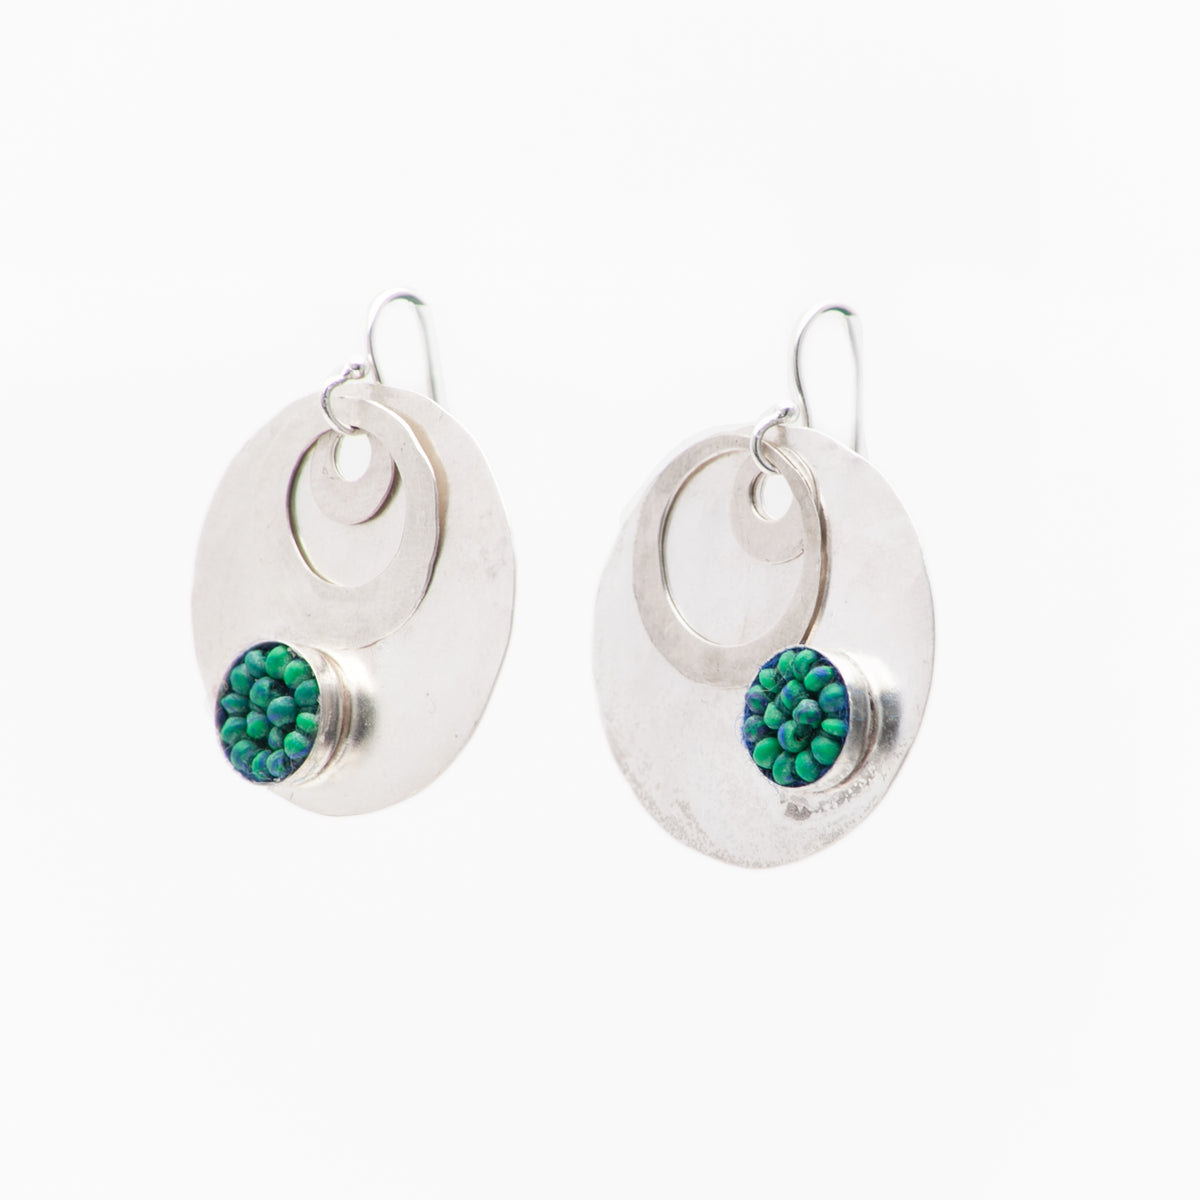 Iconic Hand Hammered Silver Coin with Azurite Mosaic Earrings